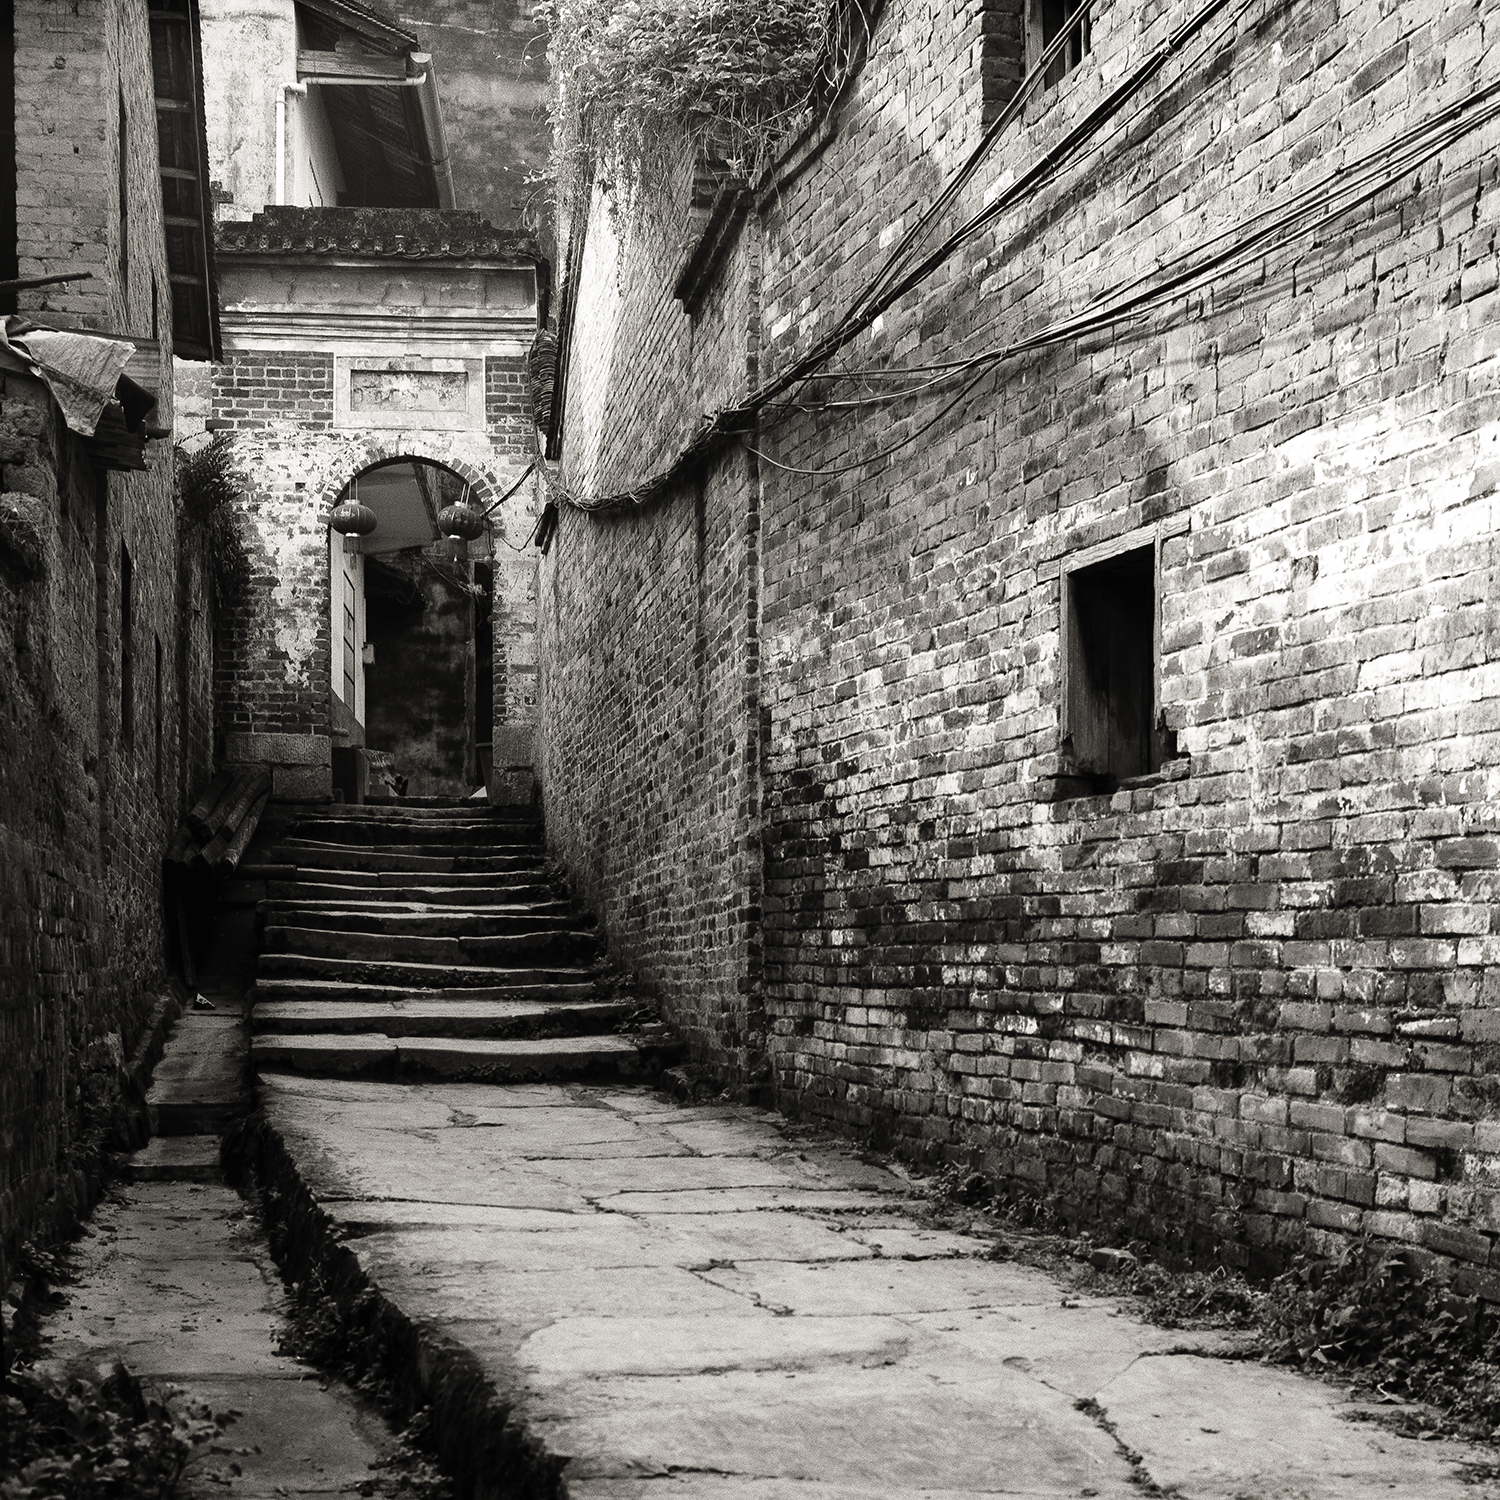 Alley, China, 2018